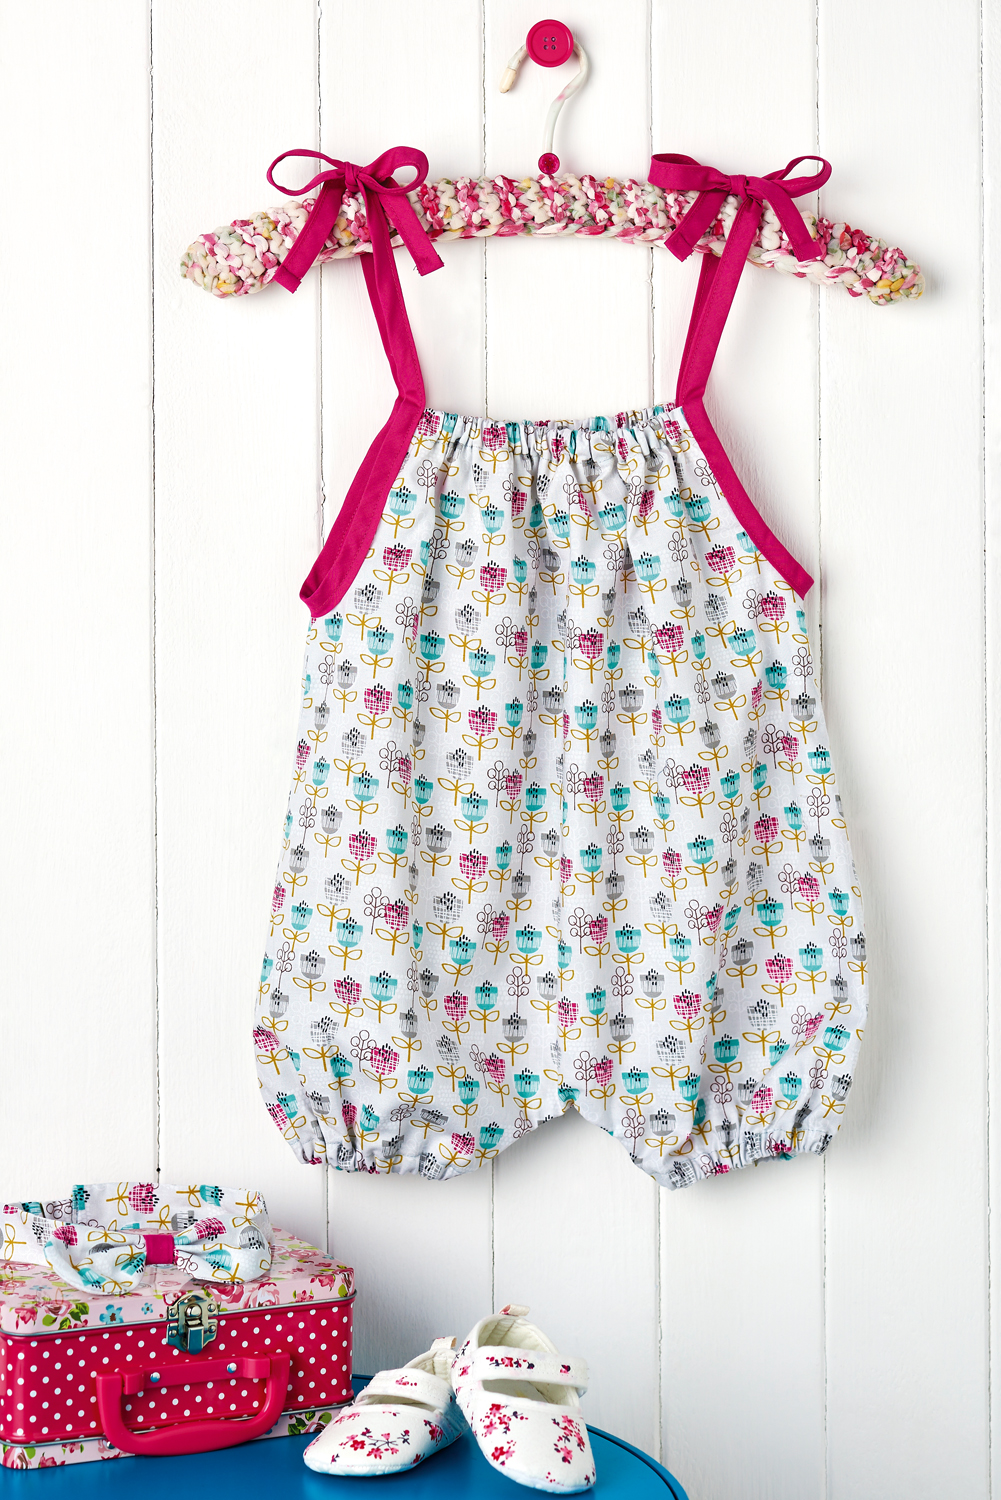 Romper Suit Free Sewing Patterns Sew Magazine